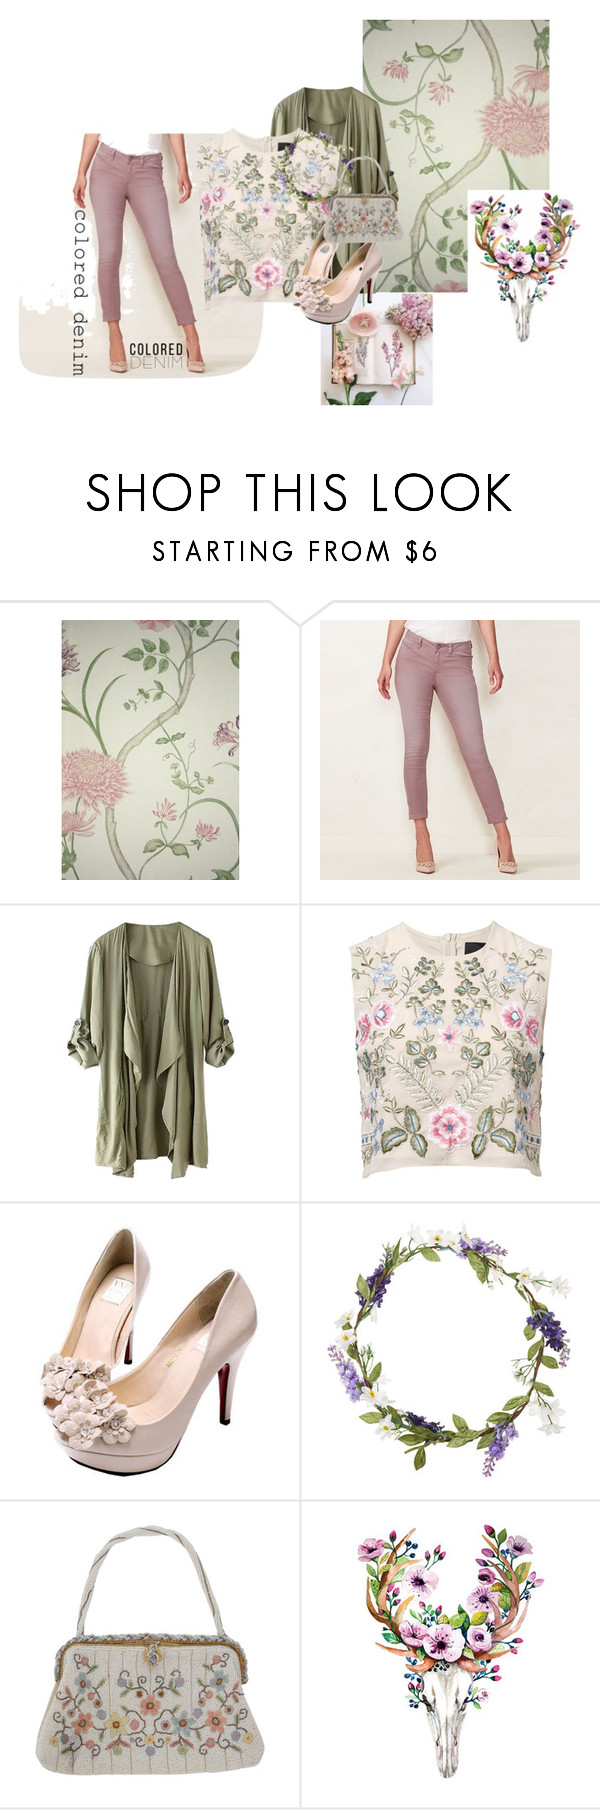 """""""CONTEST ENTRY: Coloured Denim"""" by bnspyrd ❤ liked on Polyvore featuring SANDERSON, LC Lauren Conrad, WithChic, Needle & Thread, Topshop and coloredjeans"""